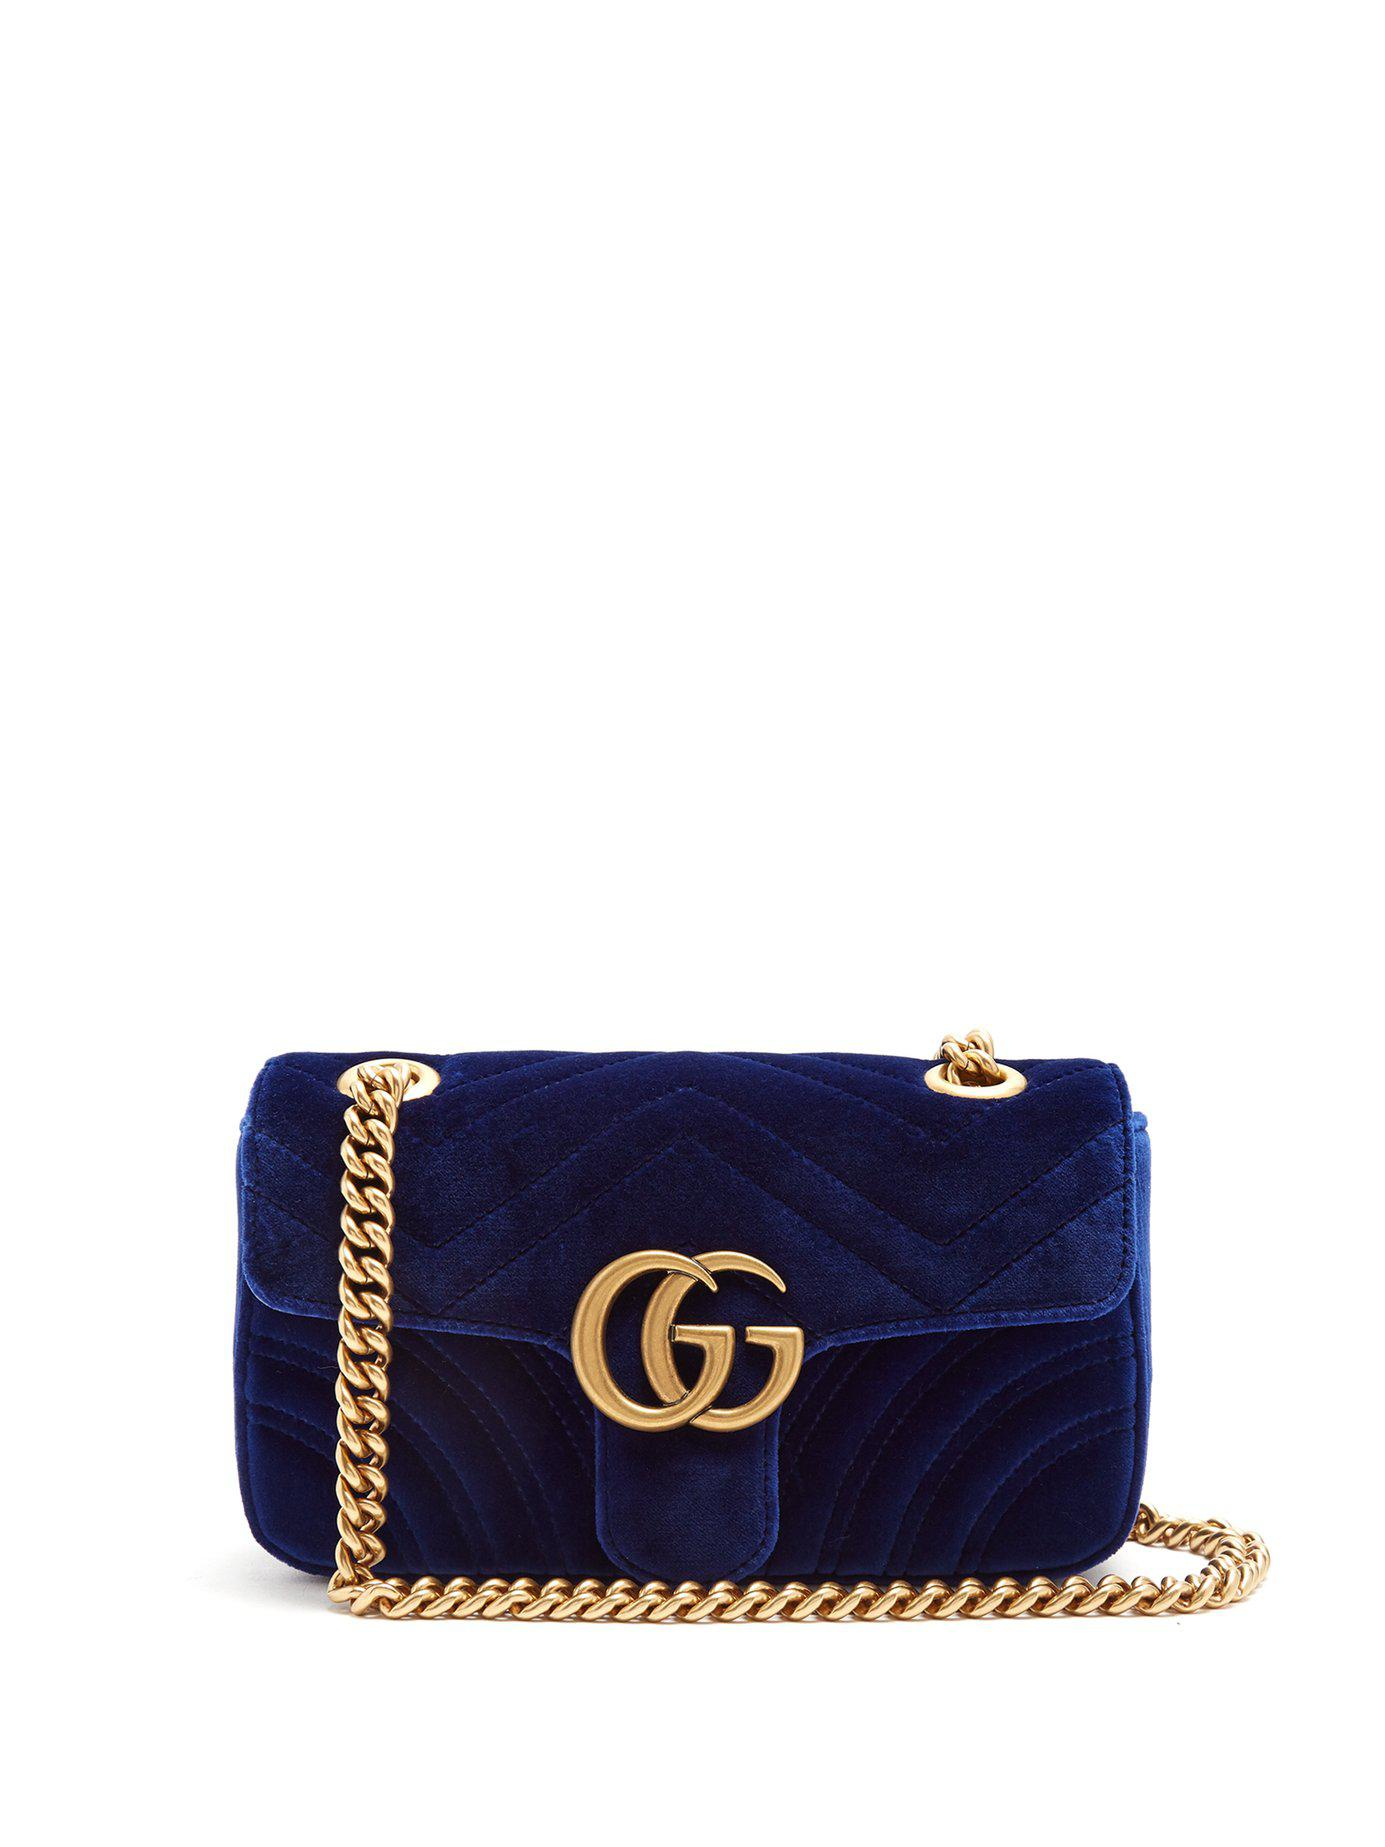 3958ce516517 Gucci Gg Marmont Mini Quilted Velvet Cross Body Bag in Blue - Save ...